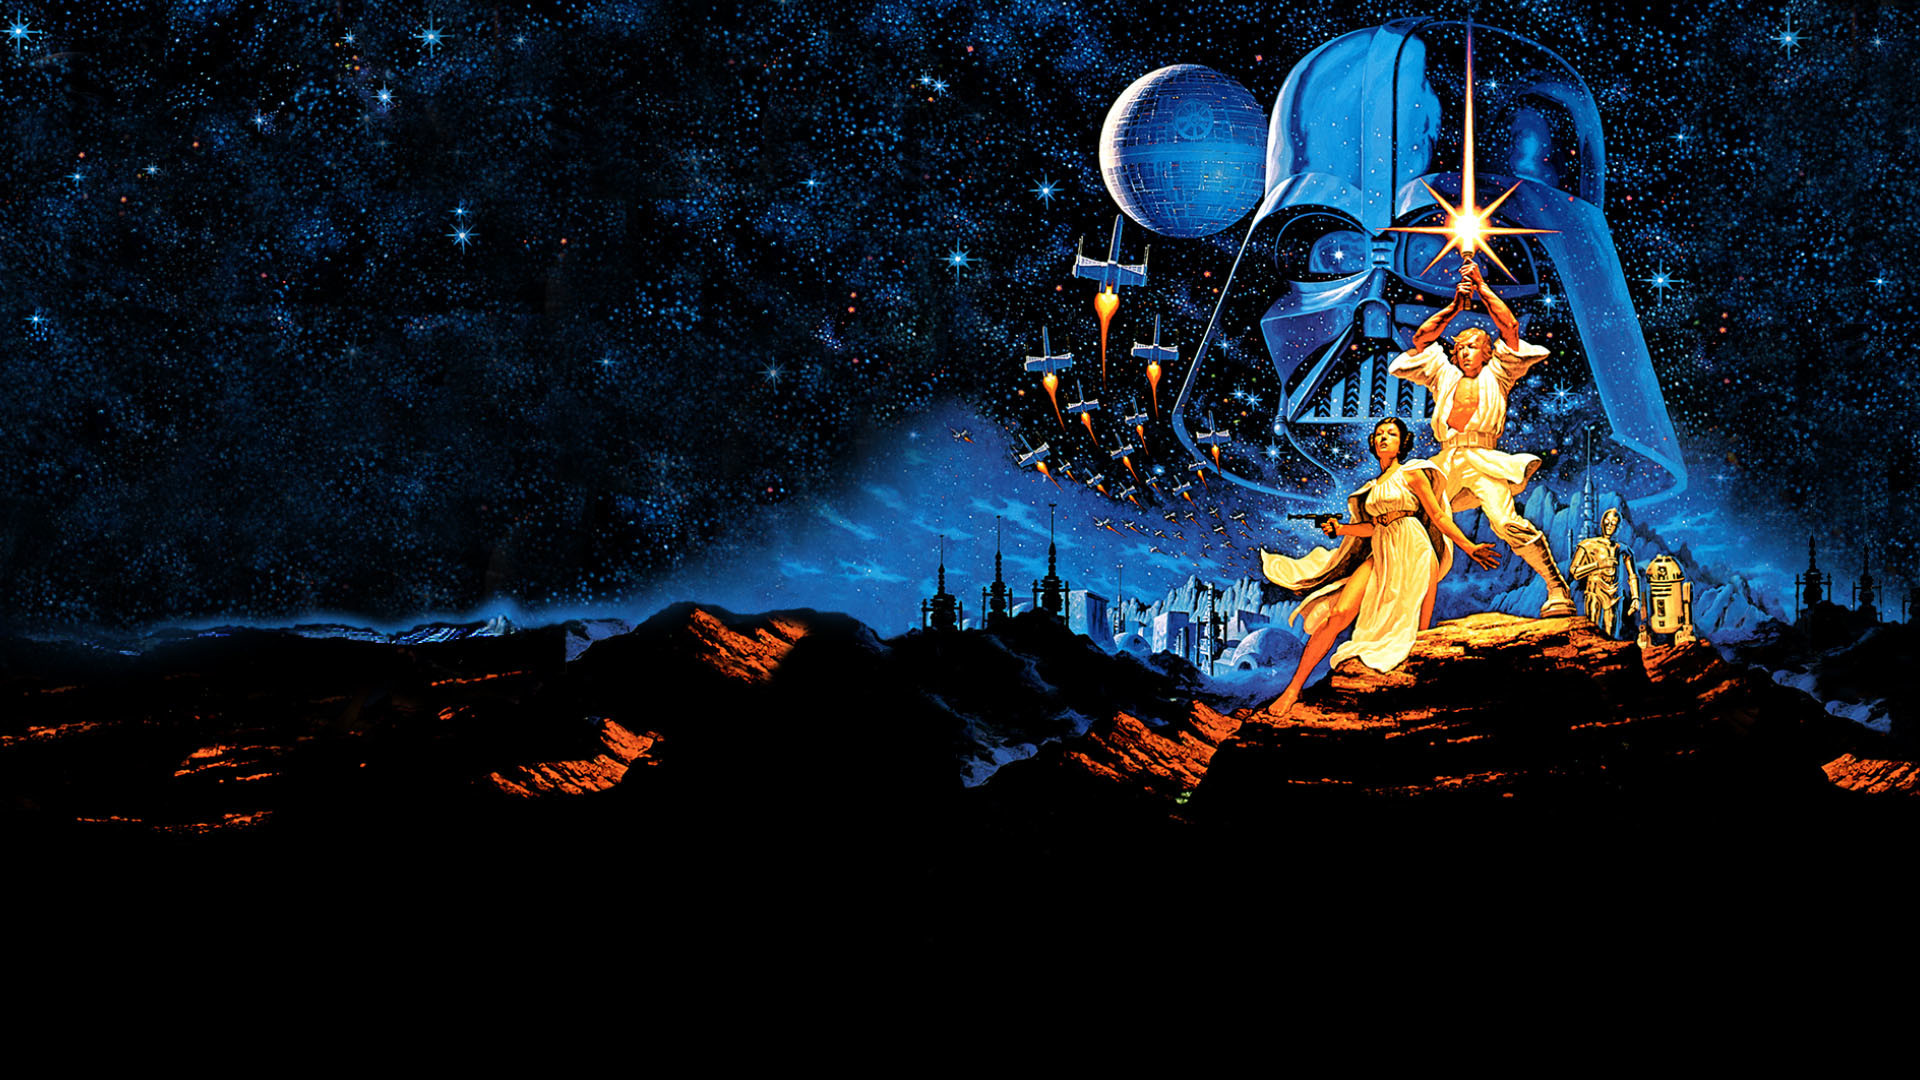 … star wars wallpapers hd backgrounds images pics photos free …